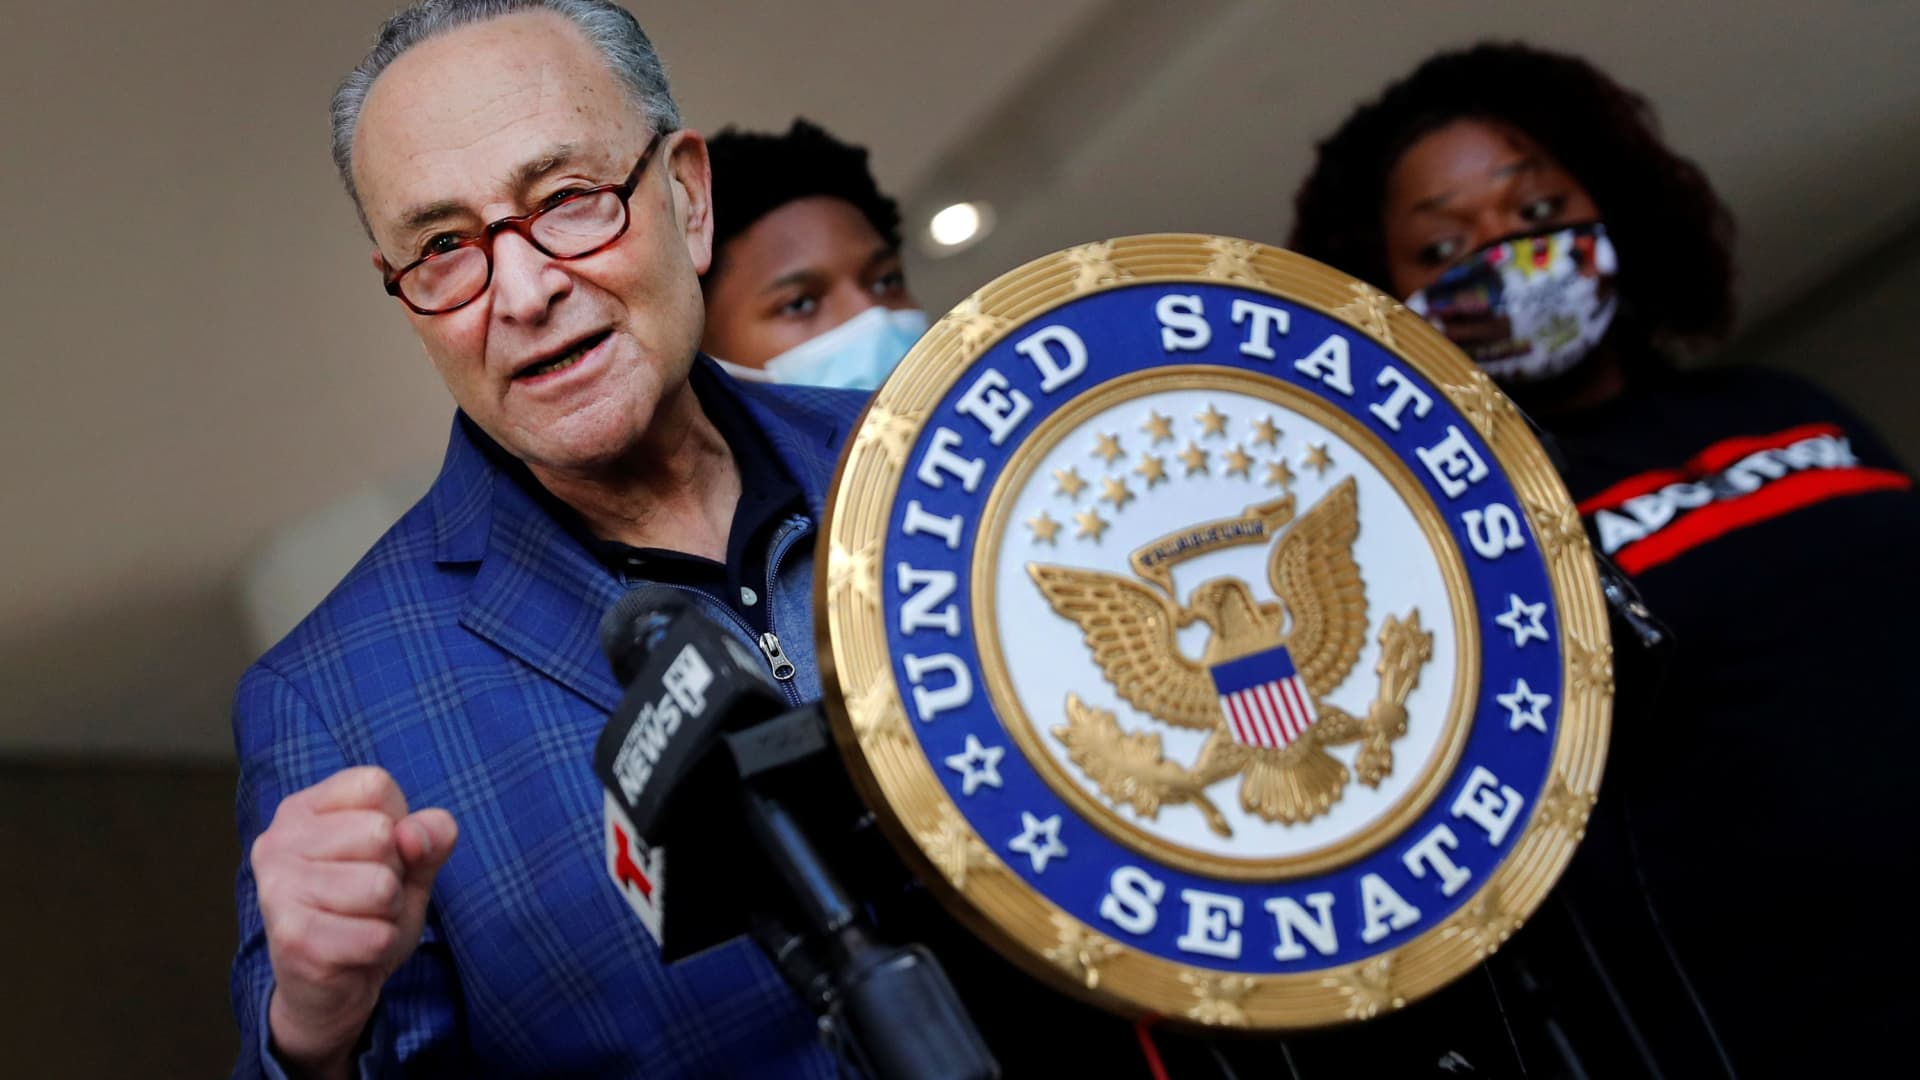 U.S. Senate Majority Leader Chuck Schumer (D-NY) speaks about the coronavirus disease (COVID-19) relief legislation recently passed by the U.S. Senate during a news conference in Manhattan in New York, March 8, 2021.